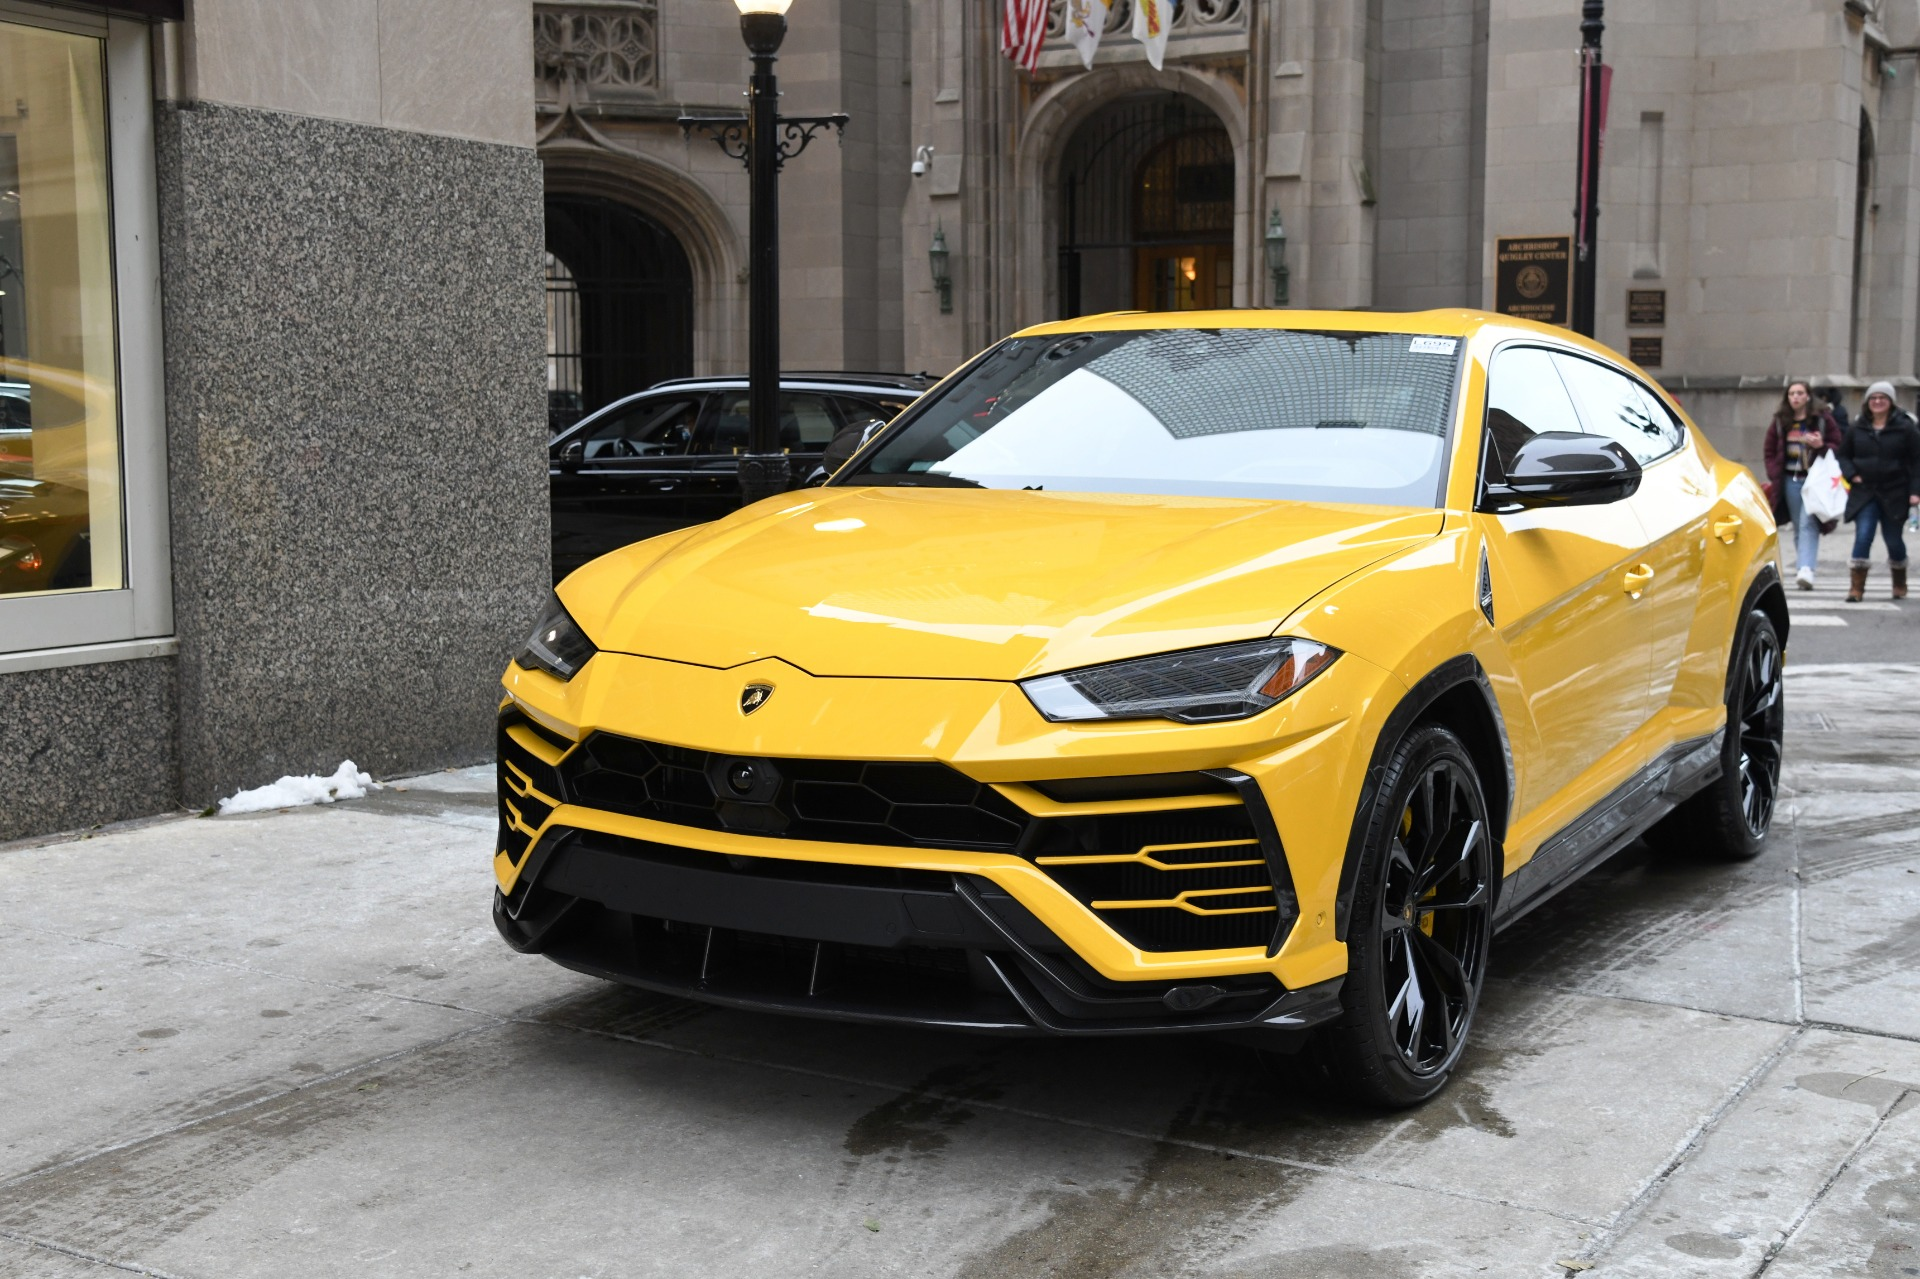 2020 lamborghini urus stock l695 for sale near chicago il il lamborghini dealer 2020 lamborghini urus stock l695 for